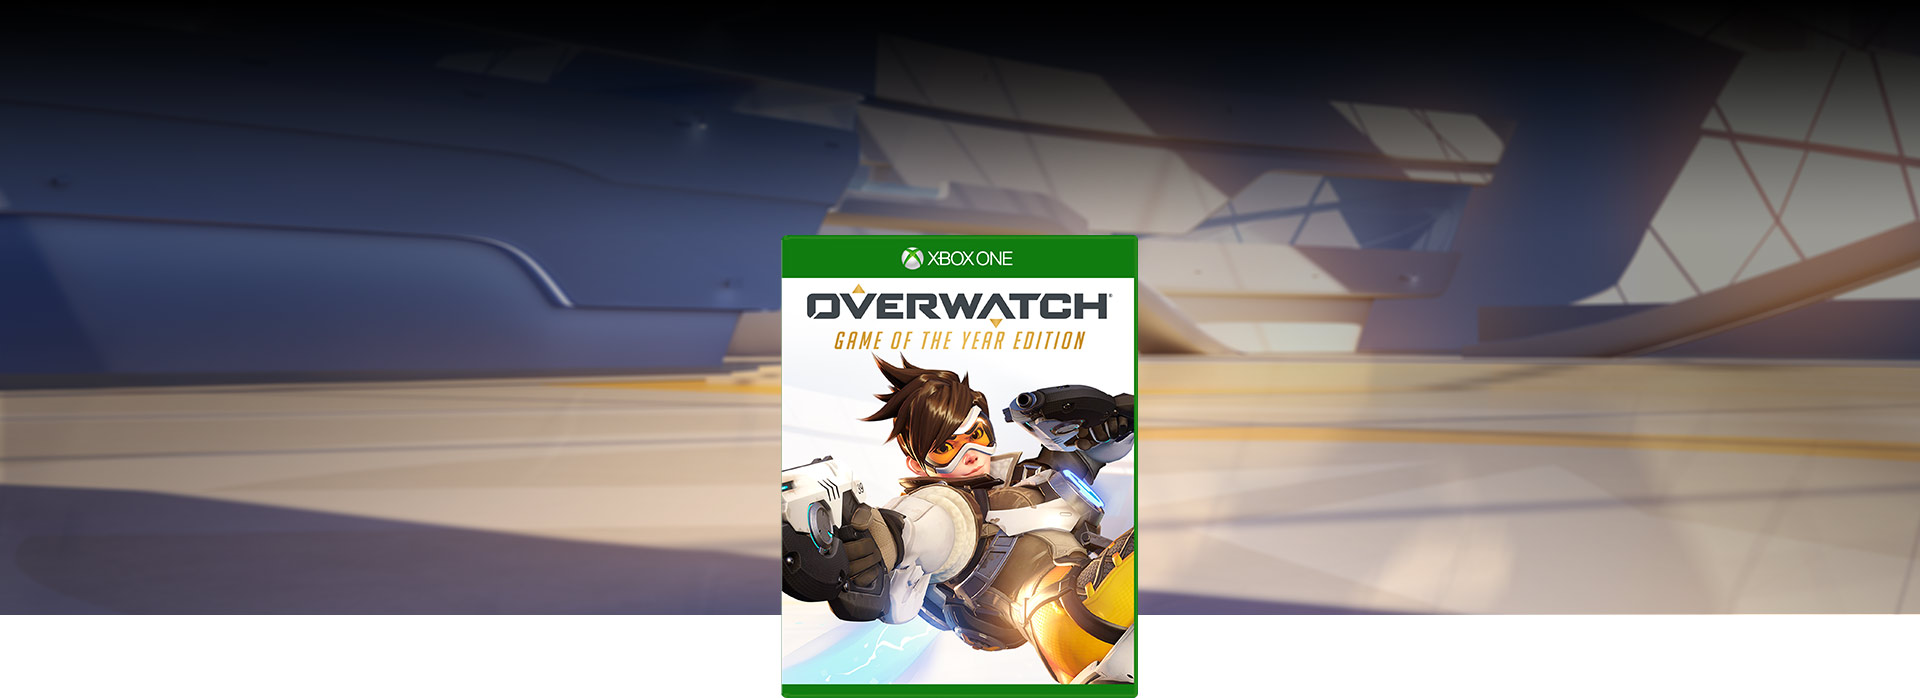 Generic view of modern hall (Overwatch Game of the Year Edition boxshot)